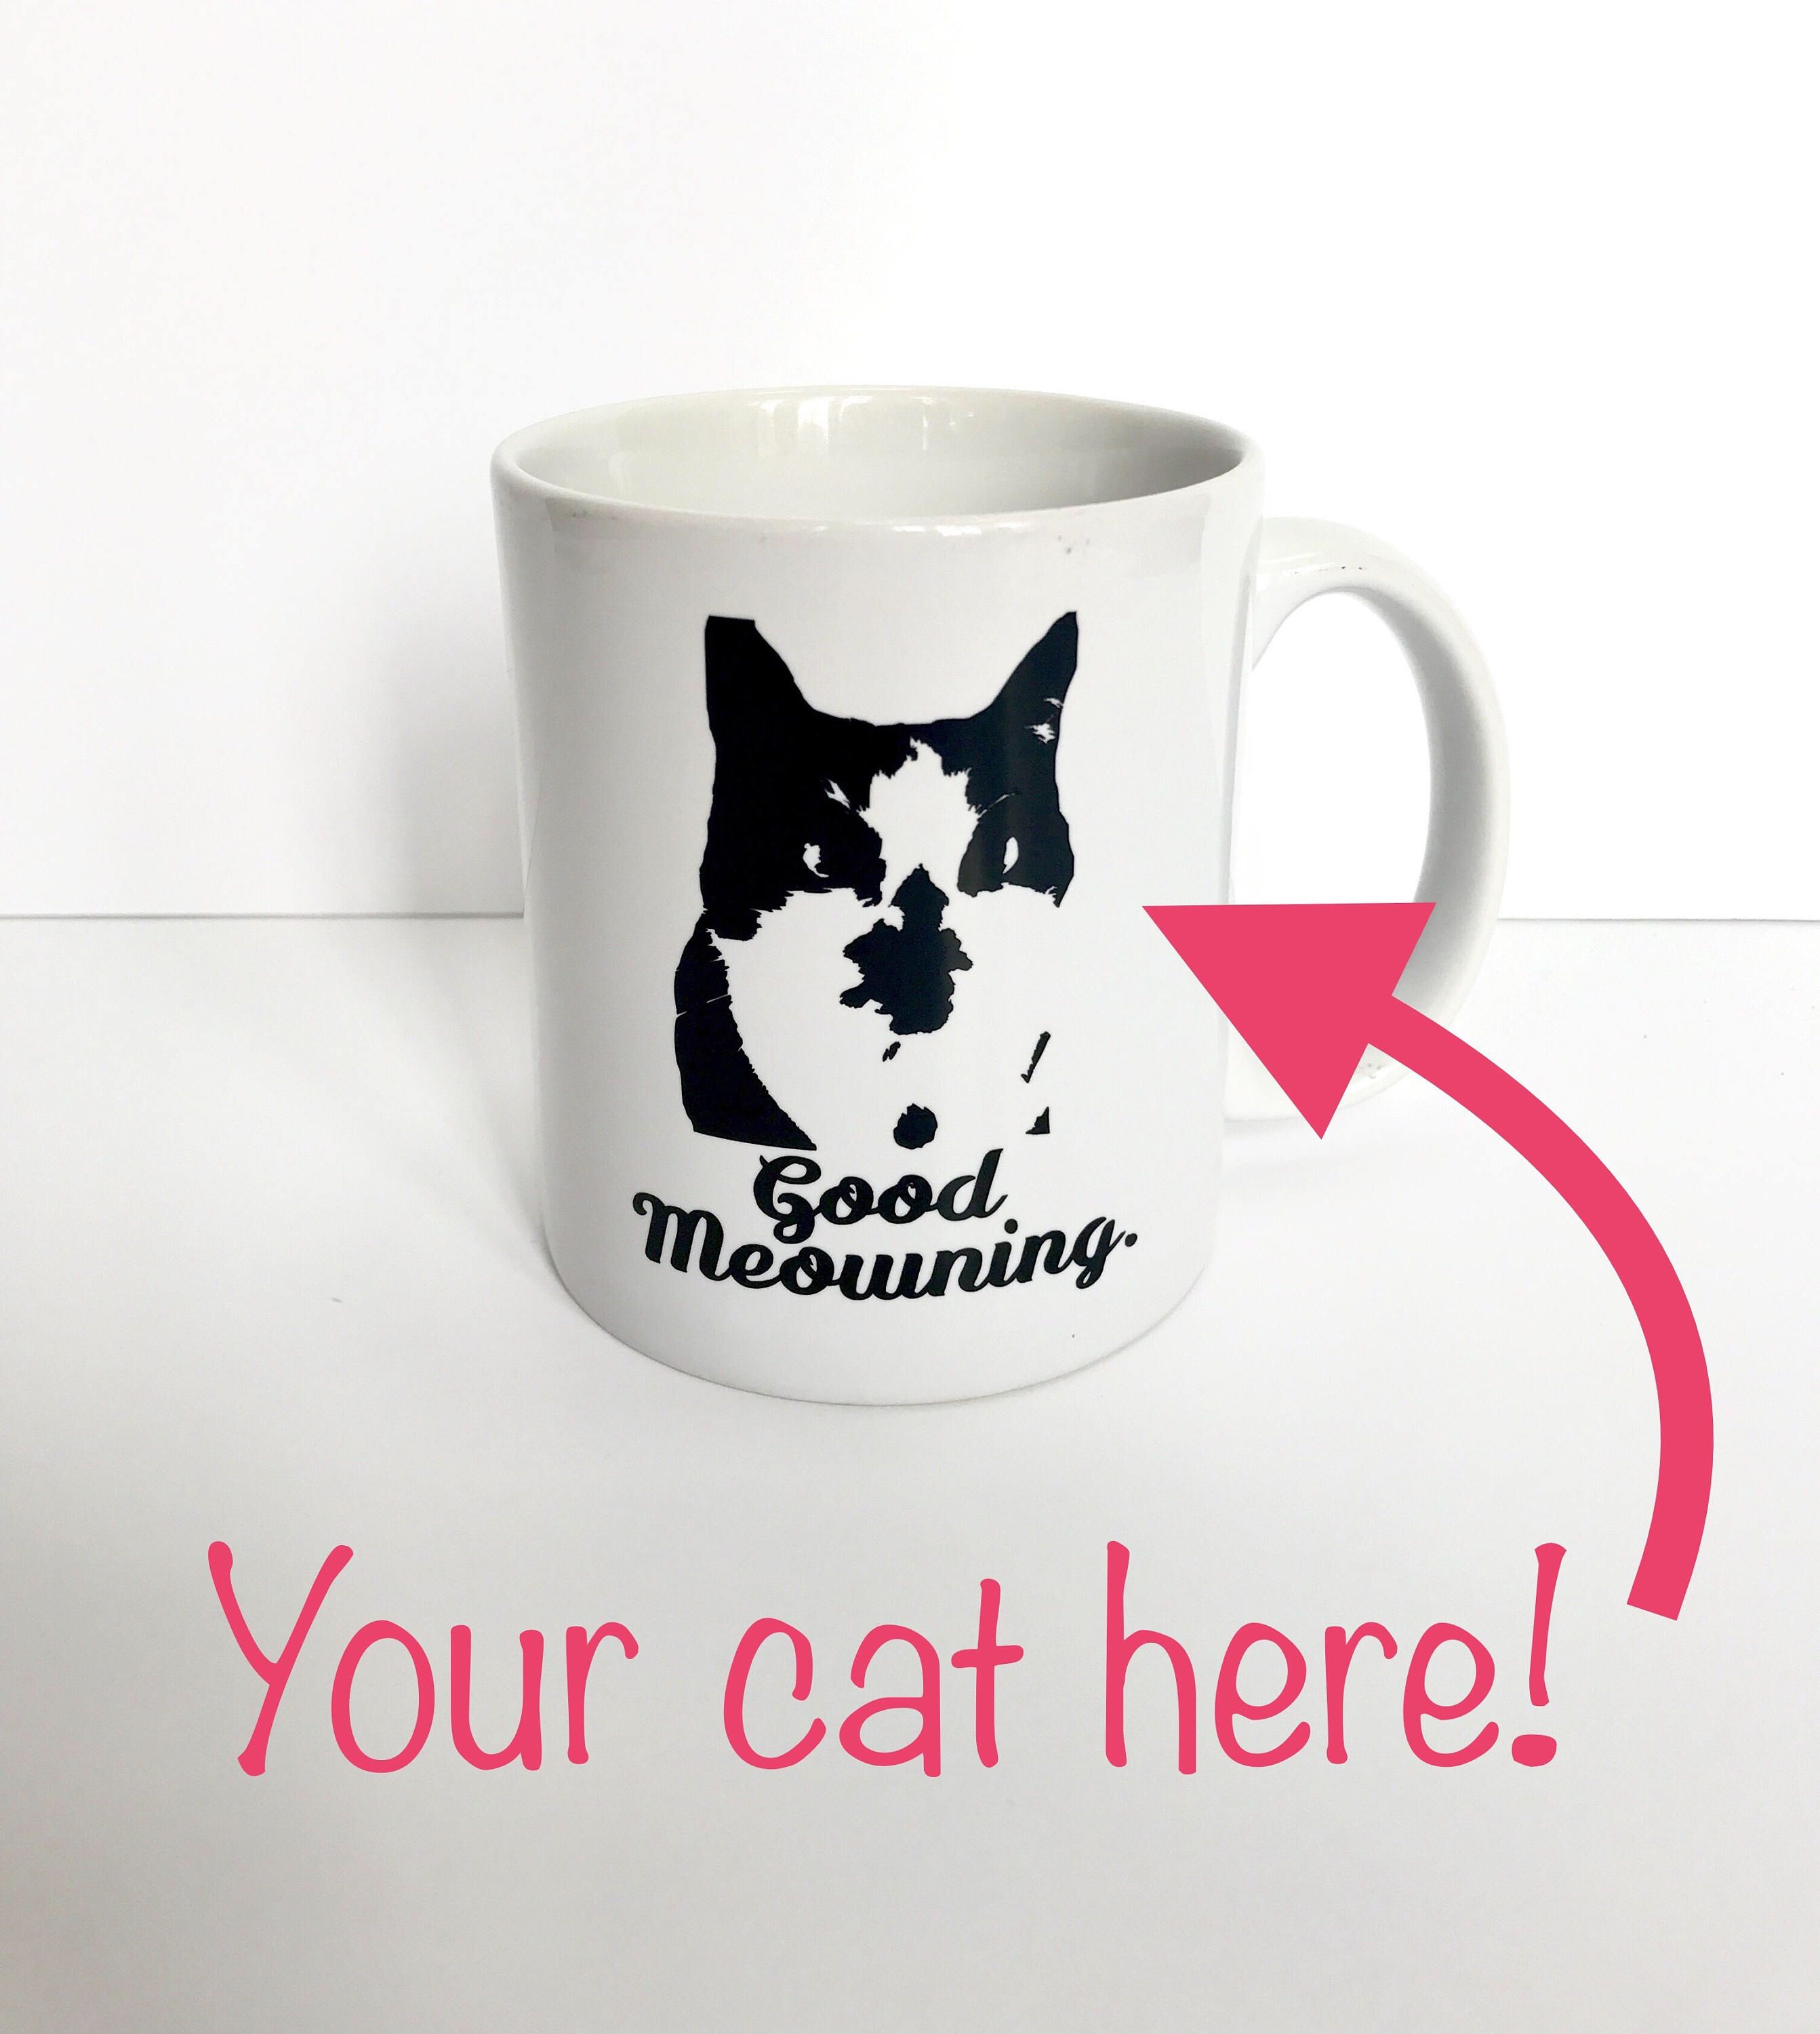 Personalized custom cat coffee mug! How cute is this